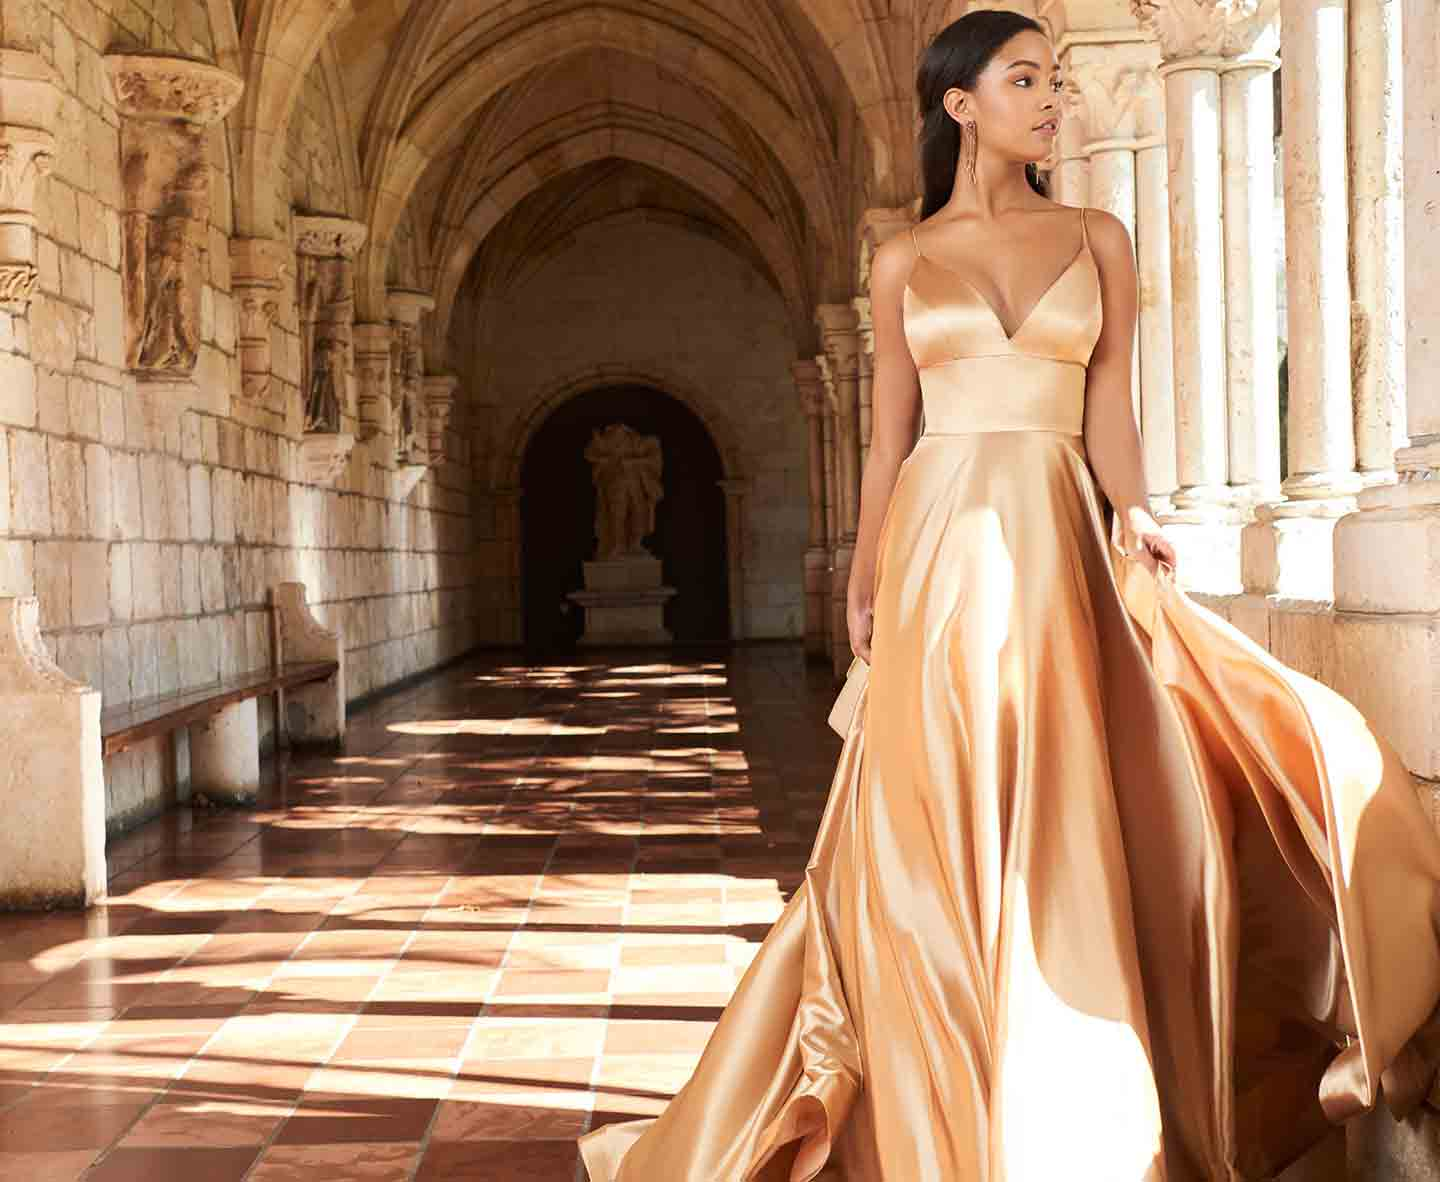 c487fb1572c Fashion Advice  What to Wear to Prom - PromGirl